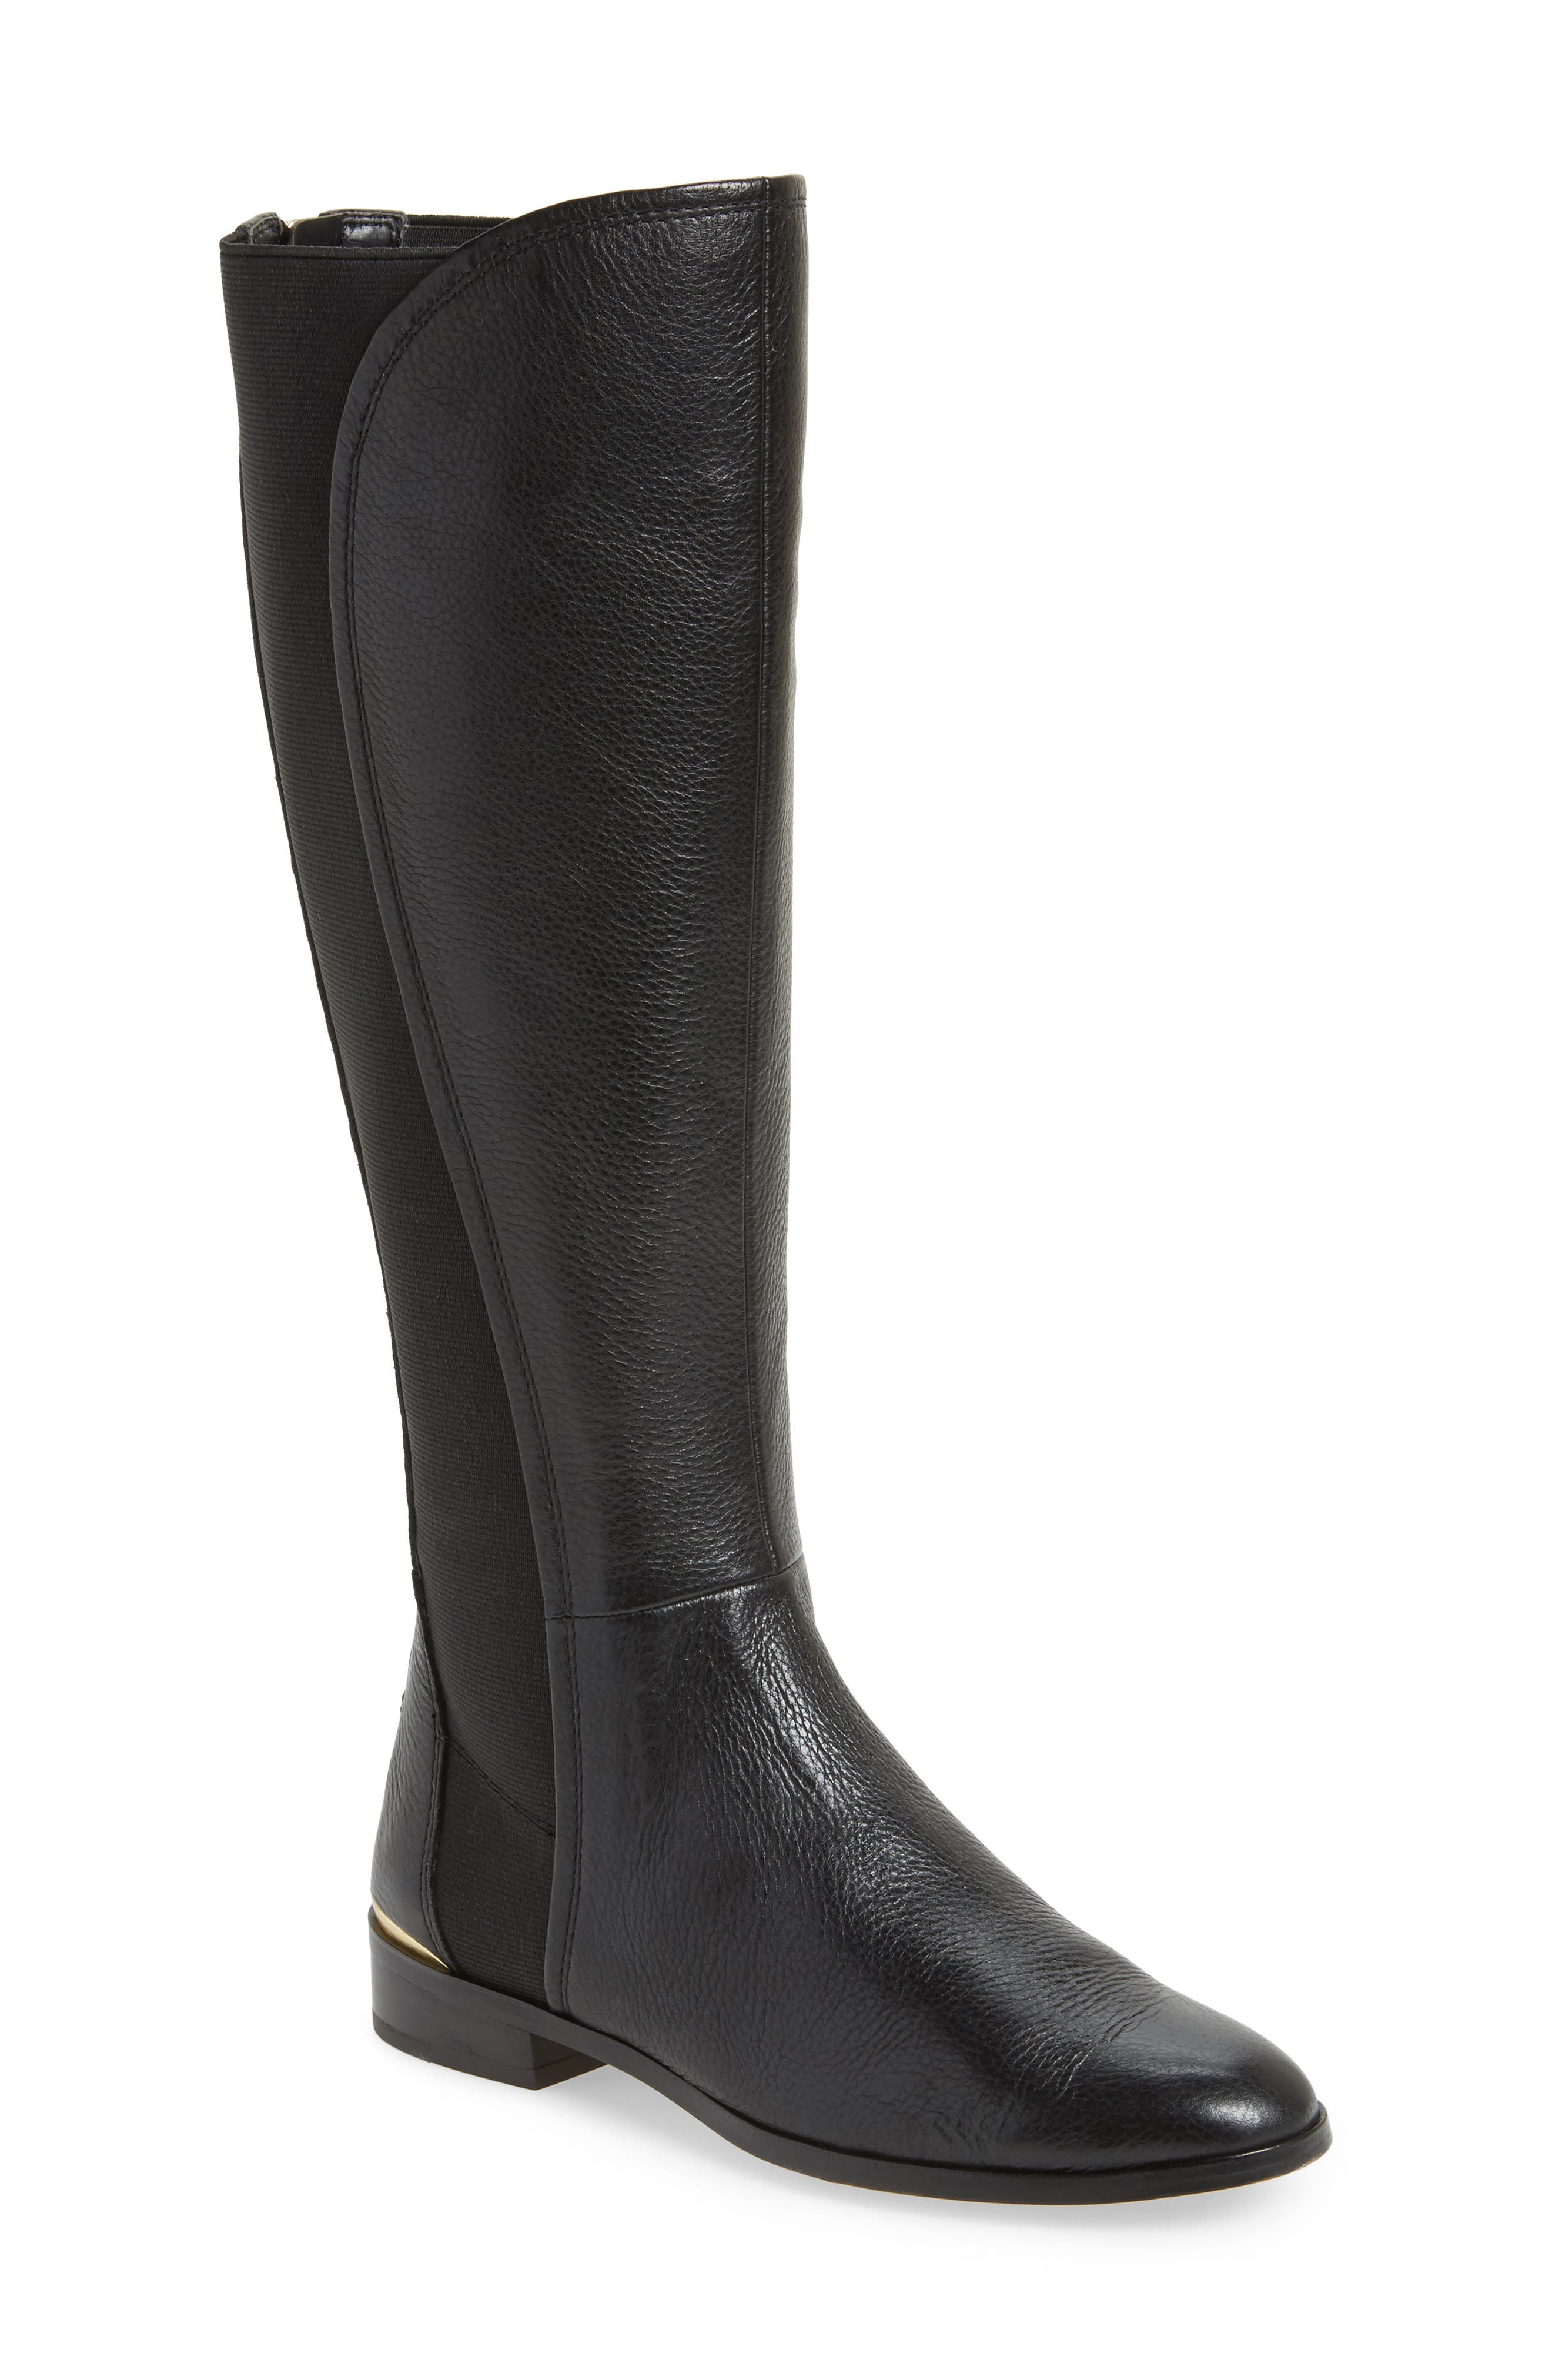 Vallery Elastic Back Knee High Boot,                         Main,                         color, Black Nappa Leather